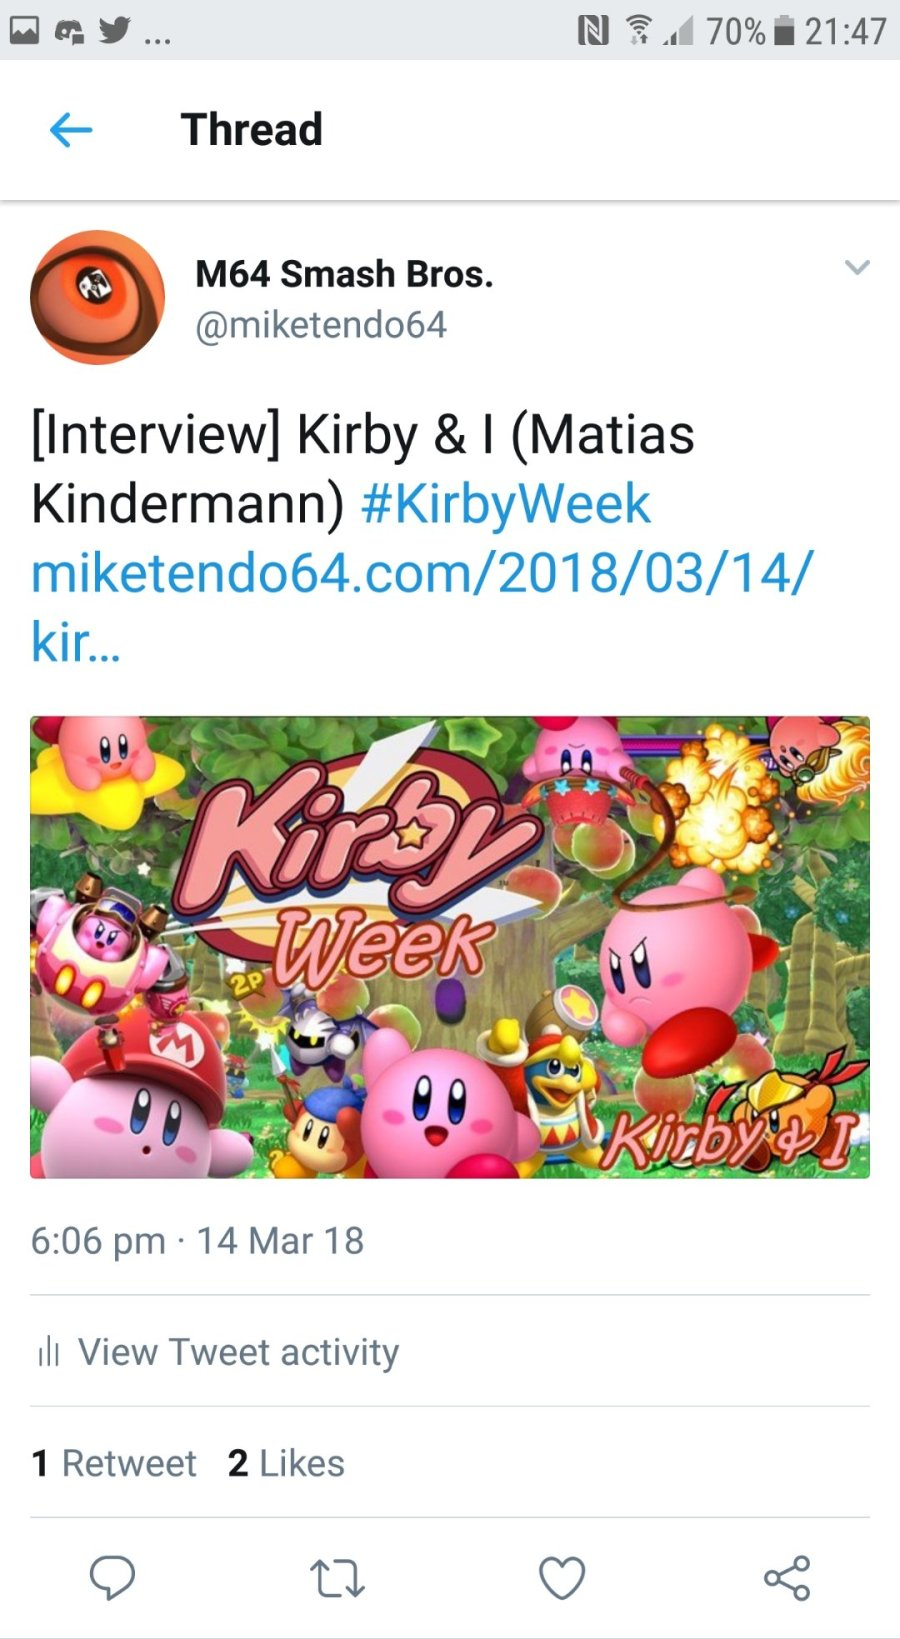 #KirbyWeek: An Interactive Twitter Experience